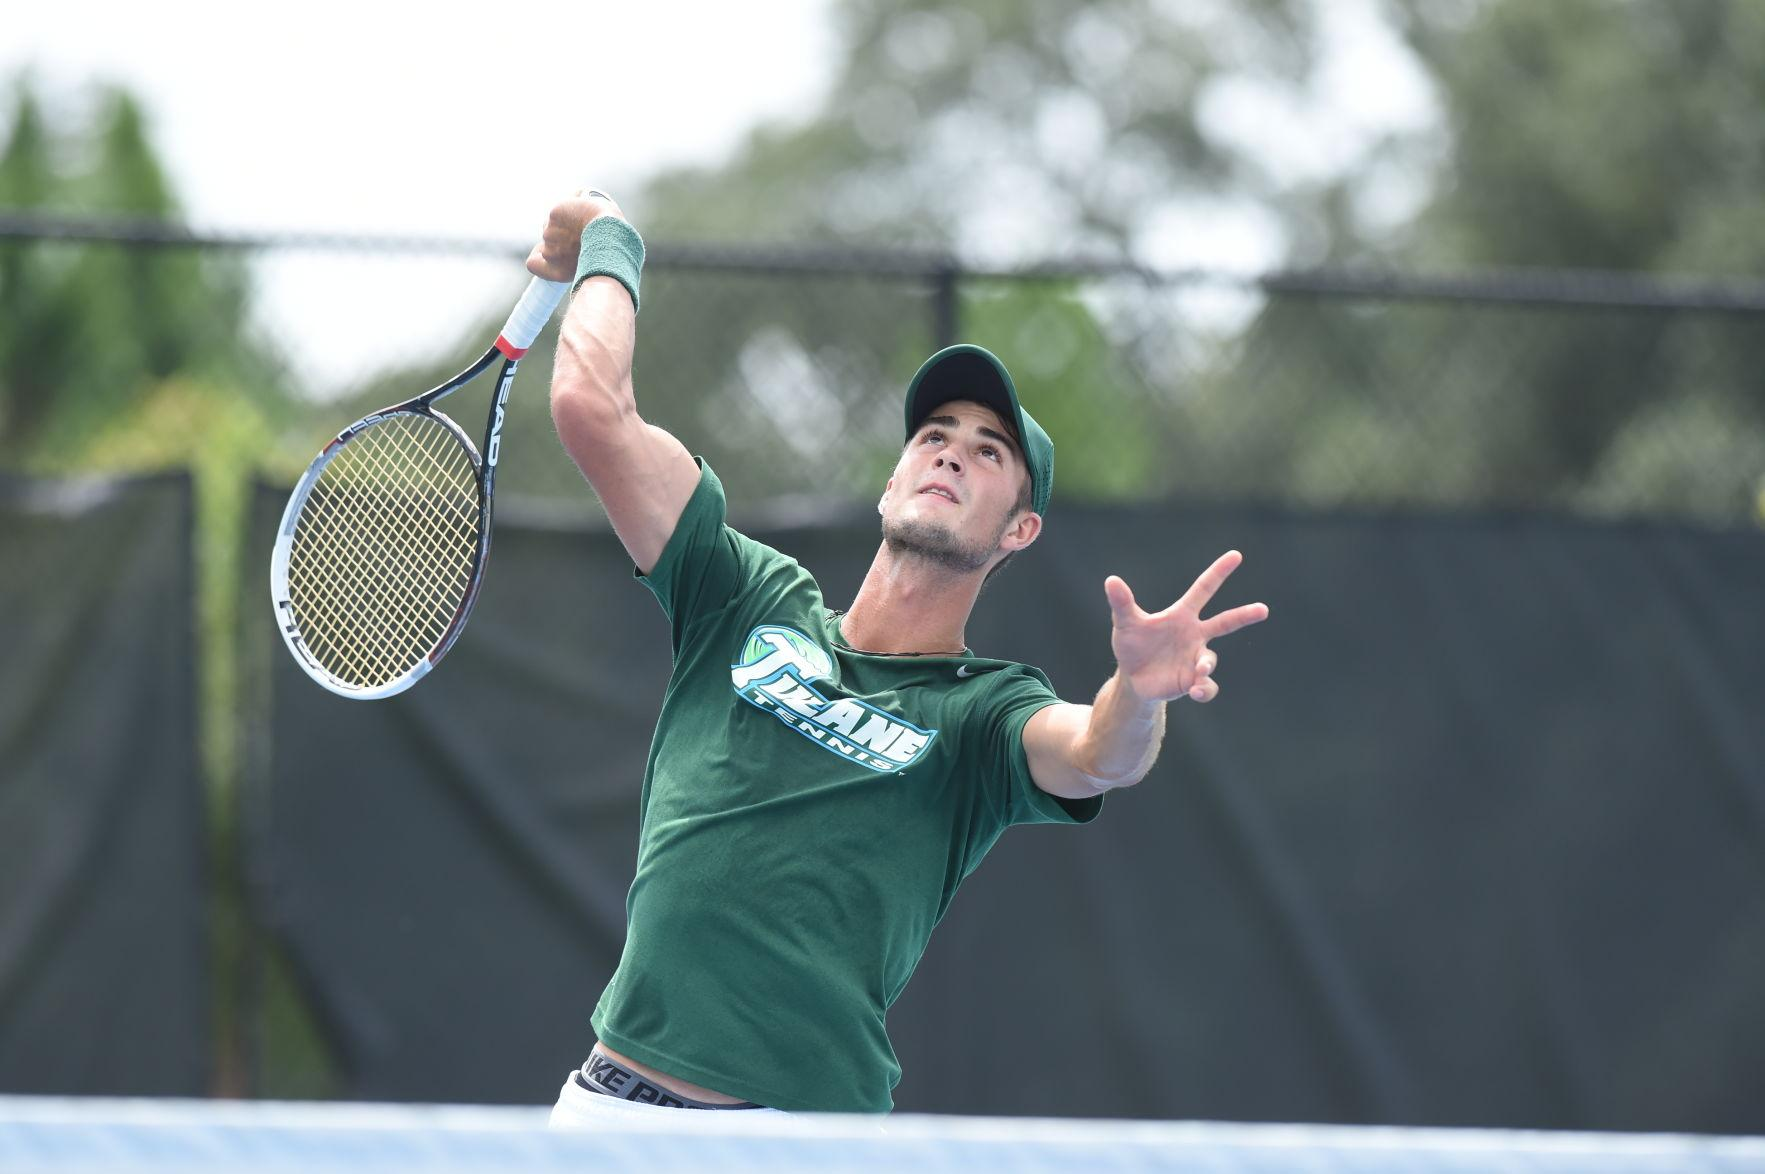 Junior Constantin Schmitz serves a ball. Schmitz produced the most dual victories for men's tennis in the 2015-2016 season, with a 19-3 record.